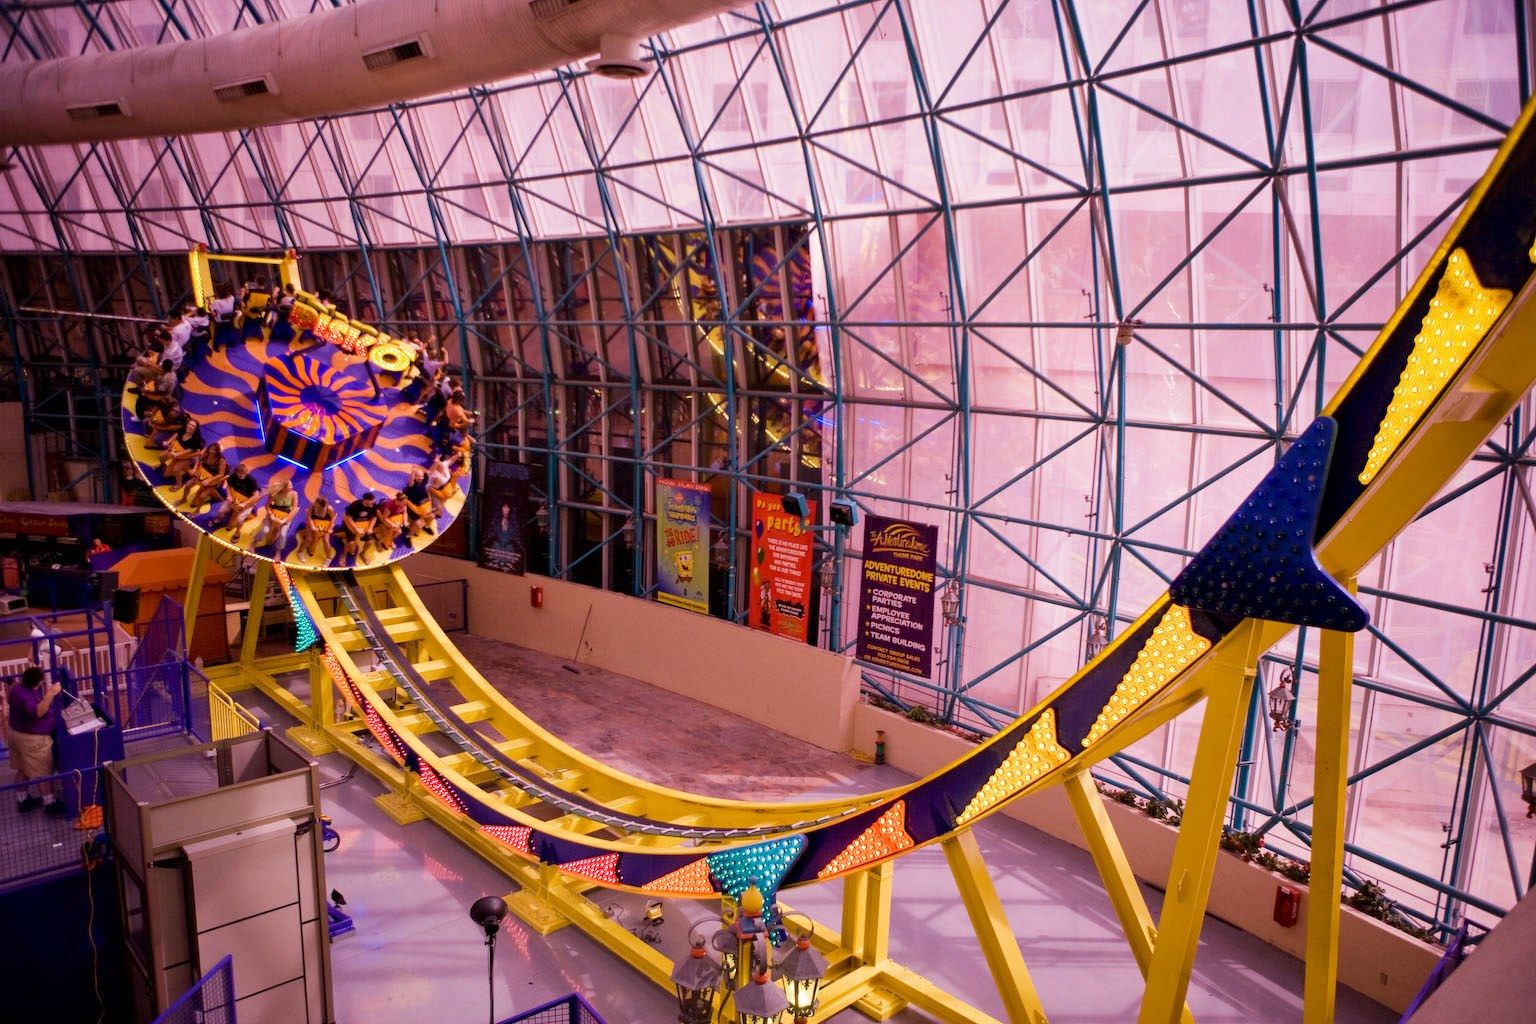 Disko Is One Of The Most Popular Rides At The